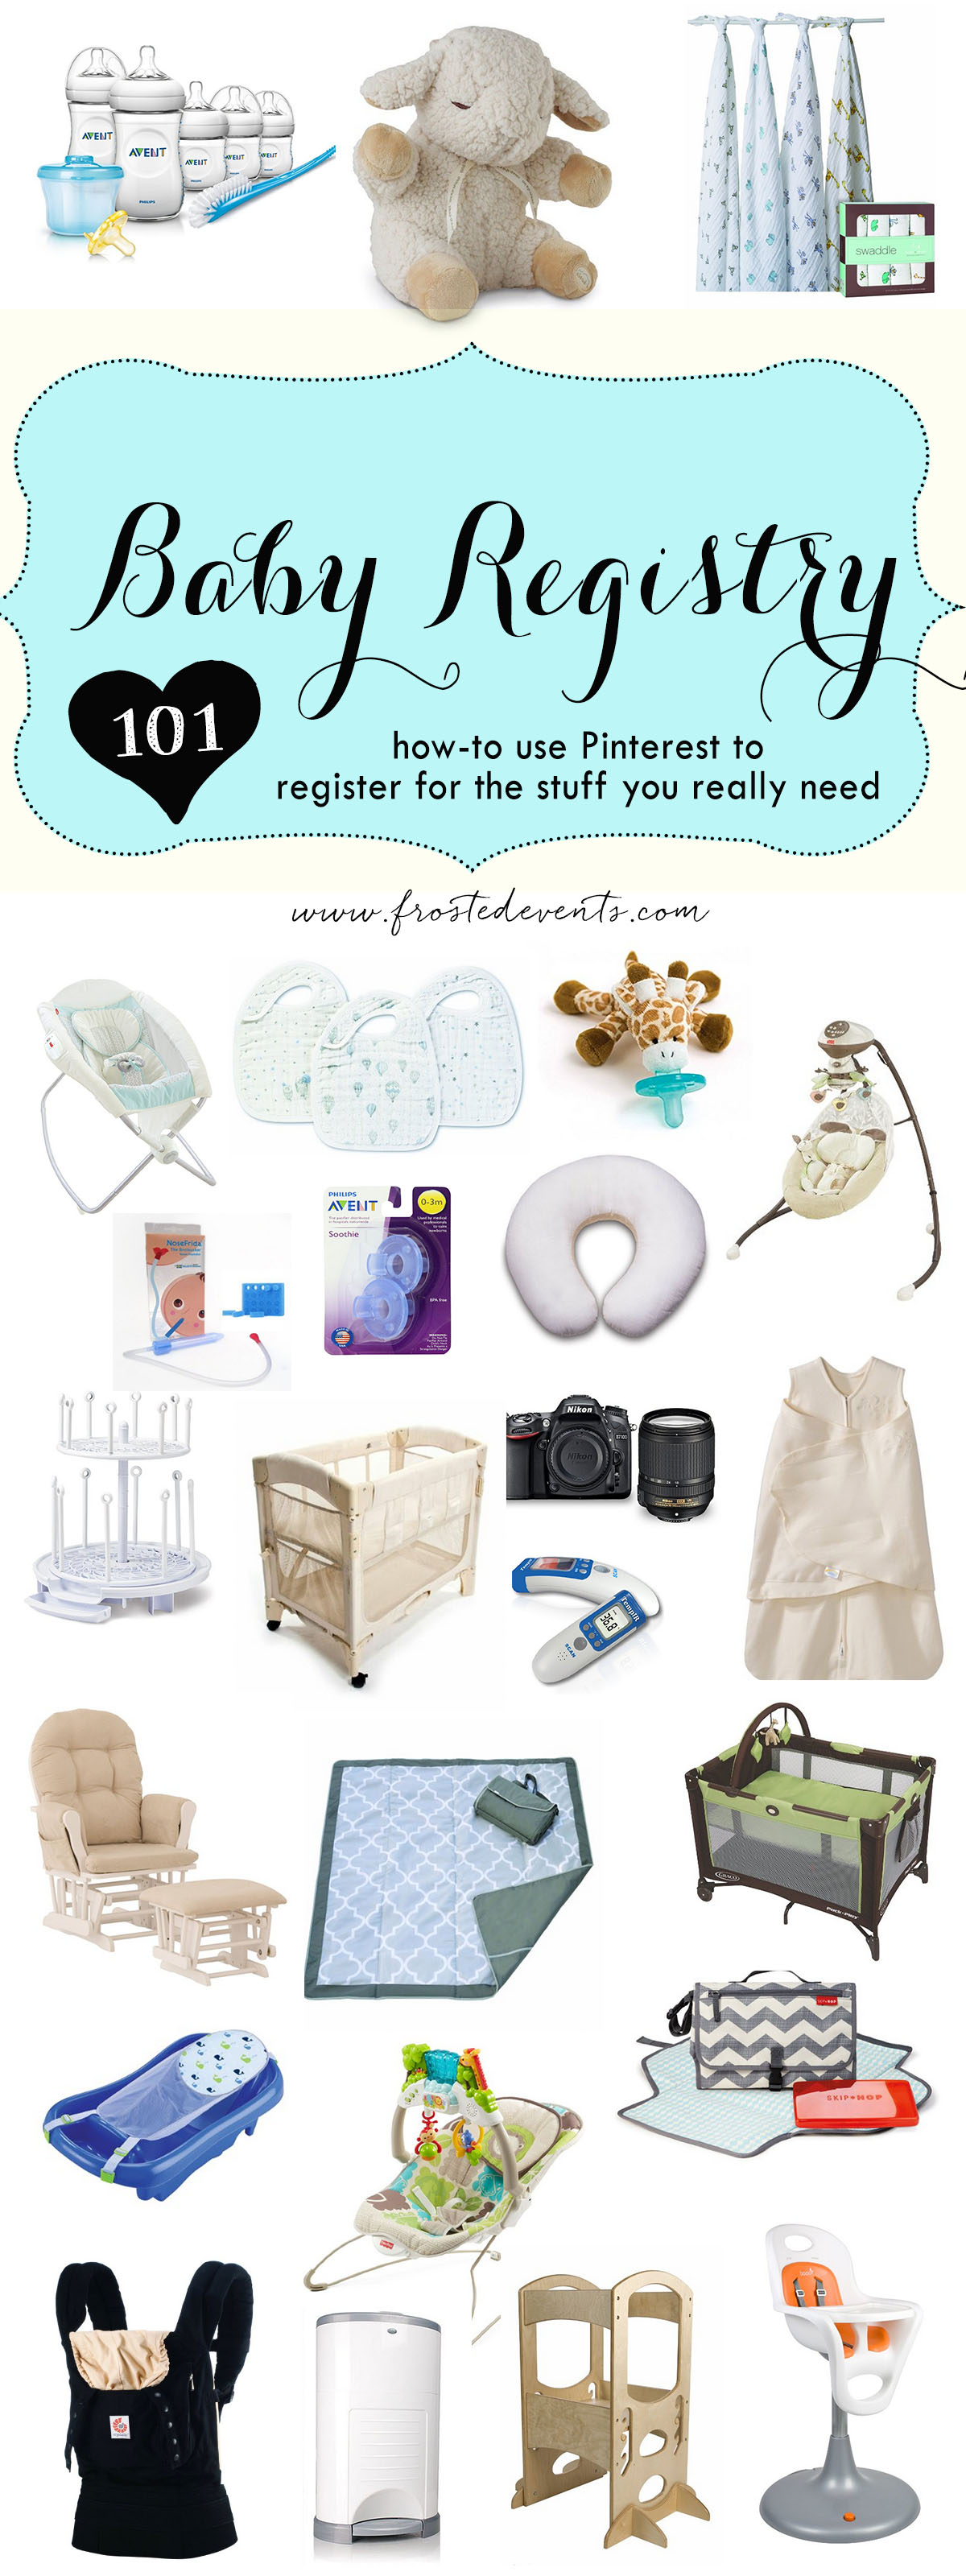 fc457cac5eed How to Use Pinterest to Make a Baby Registry of Stuff You Really Need